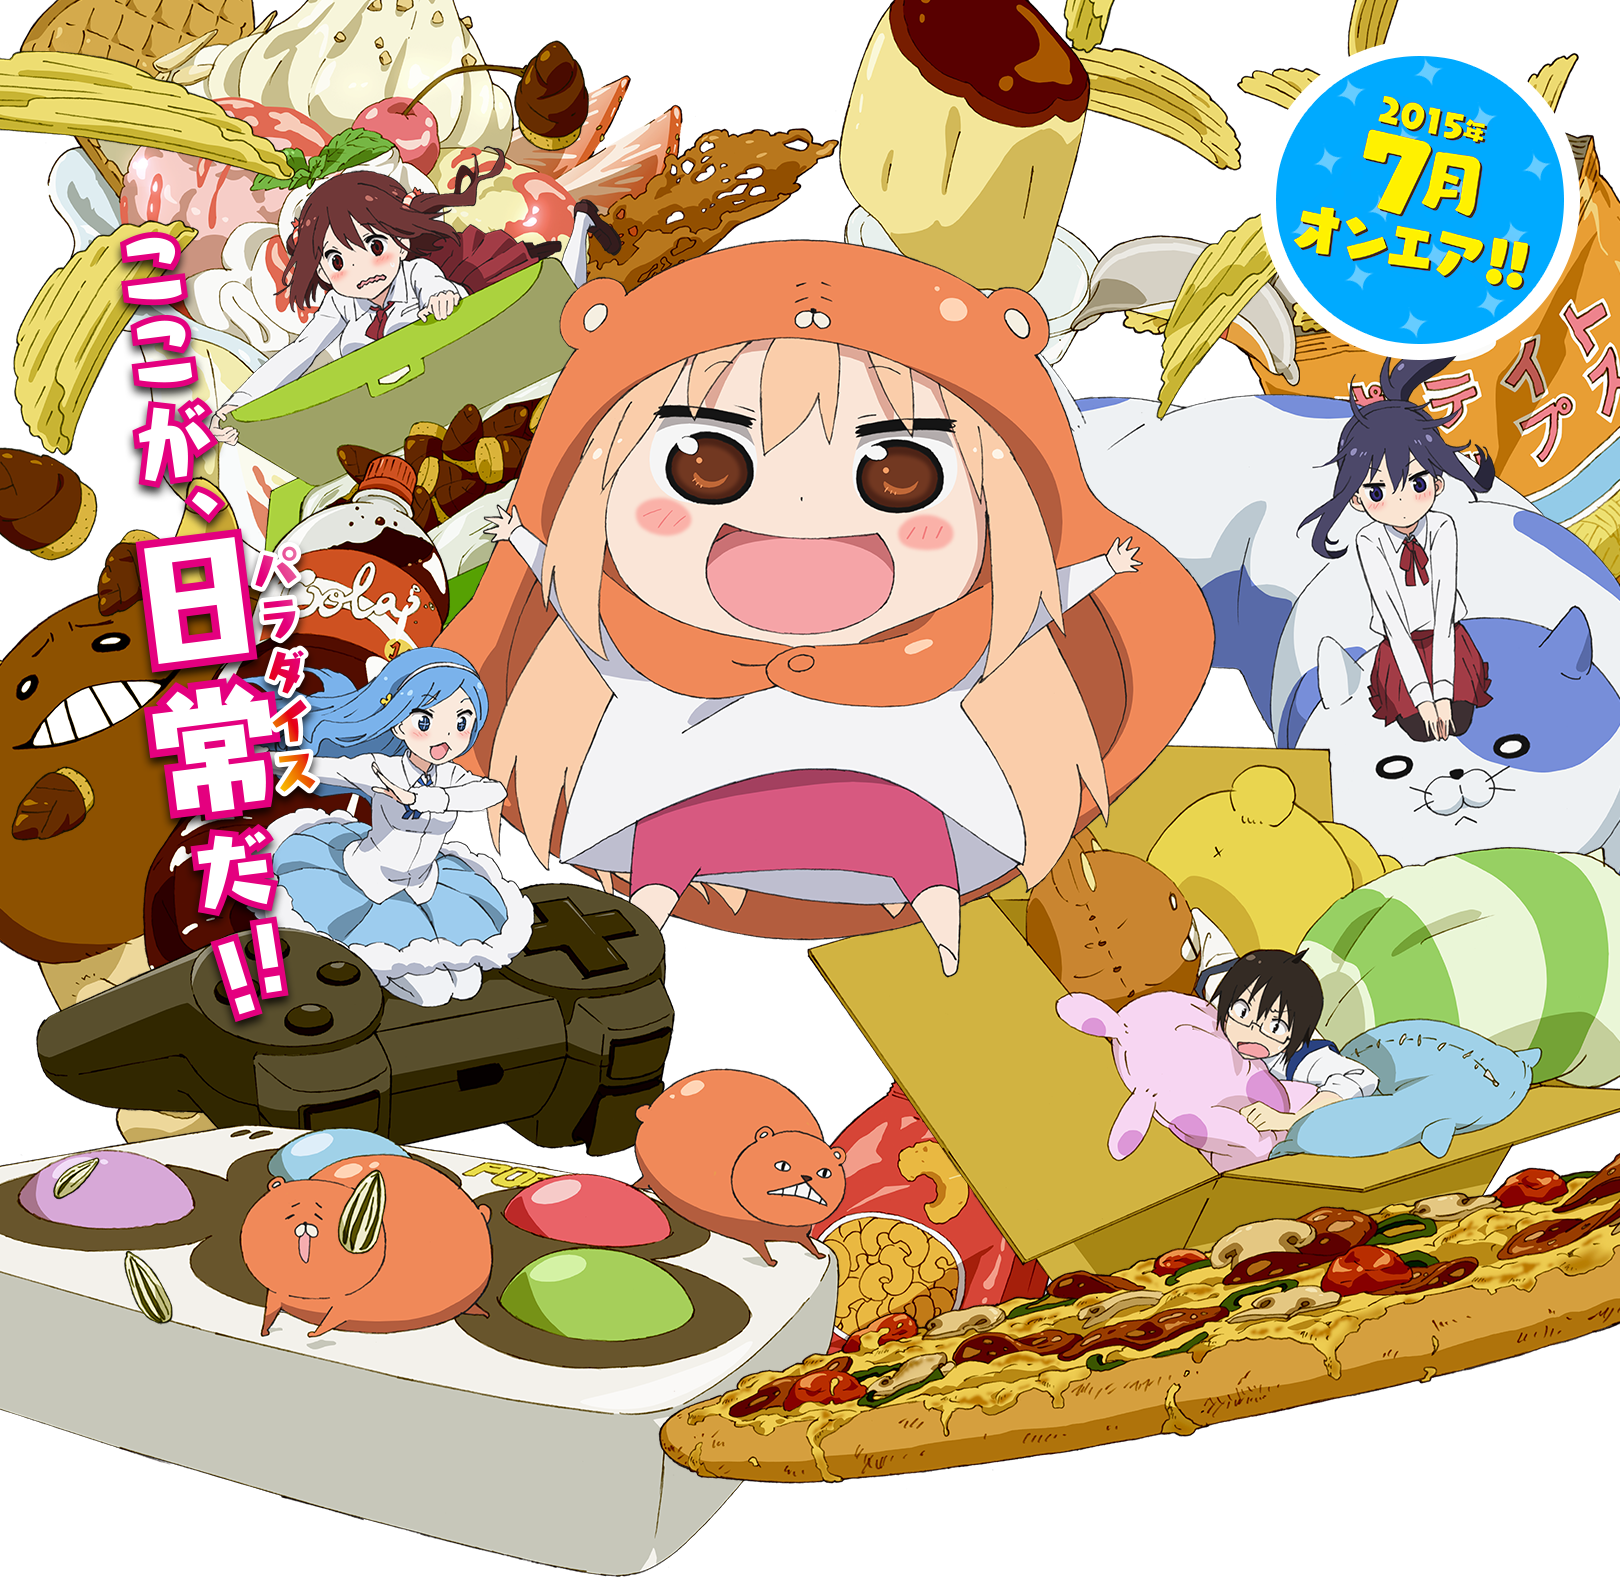 Thanksgiving 2015 clipart anime vector free stock 7 Days of Anime Summer 2015: Himouto! Umaru-Chan vector free stock